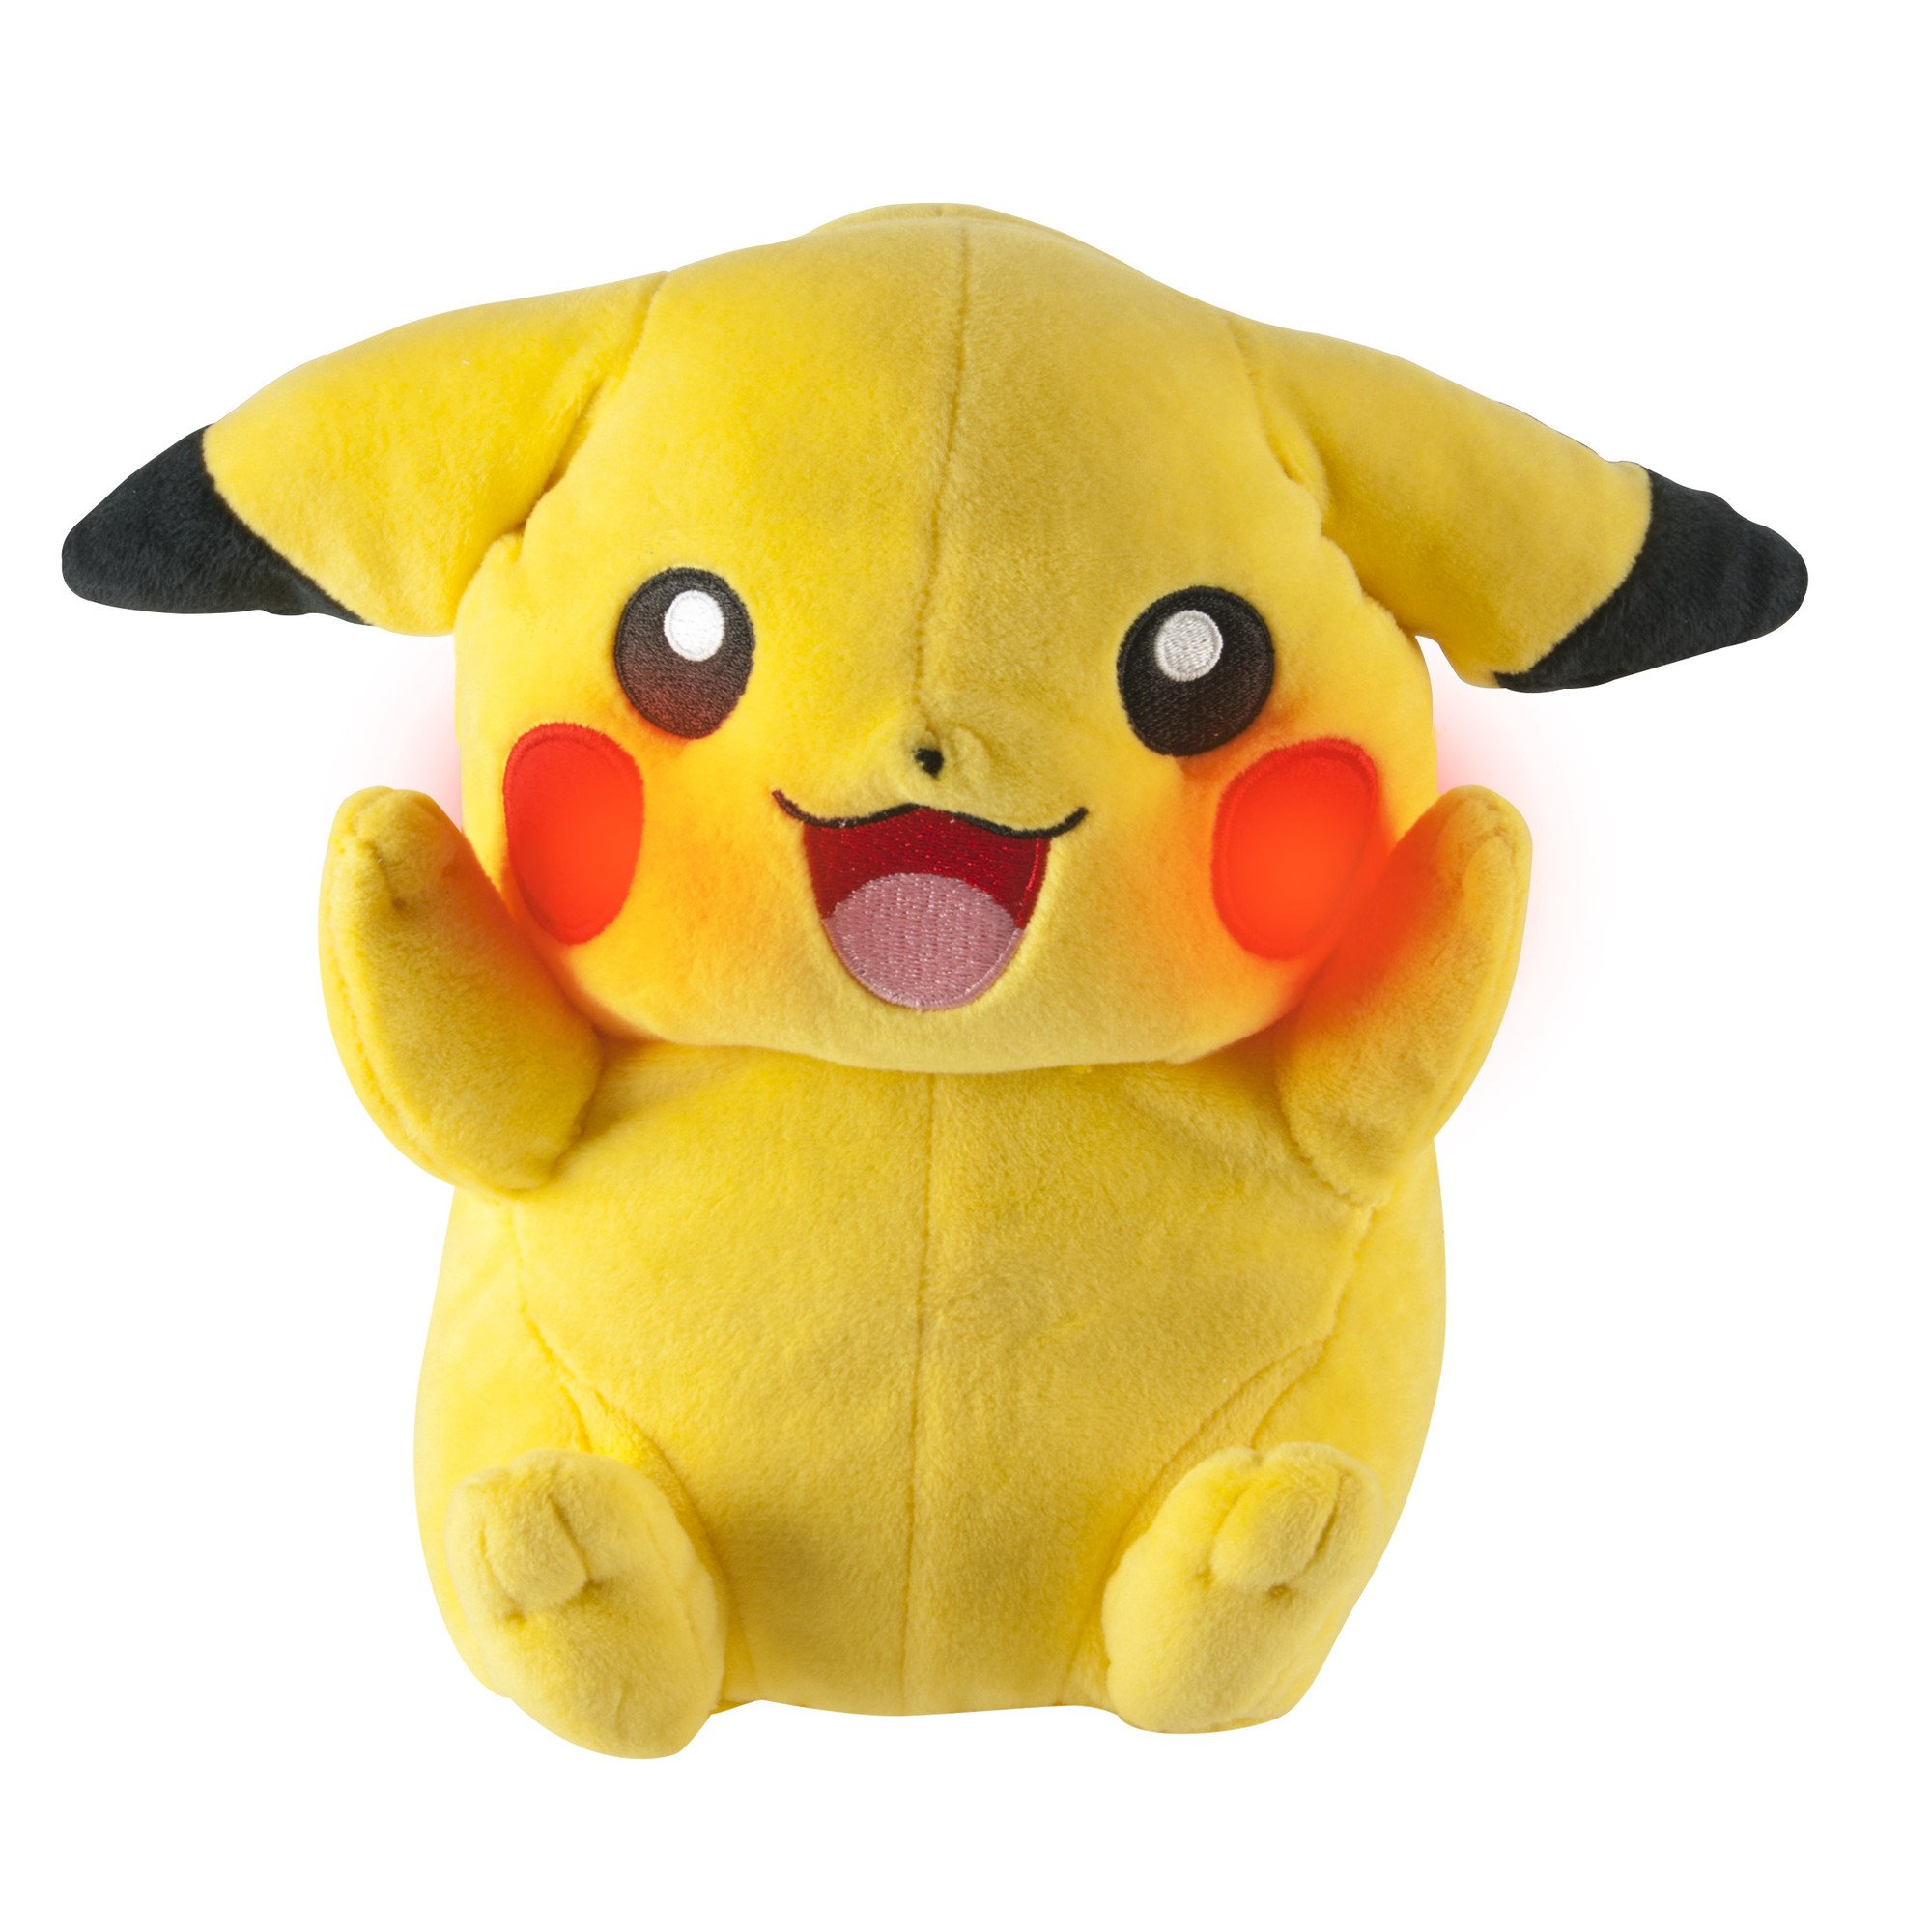 TOMY Pokémon My Friend Pikachu by TOMY